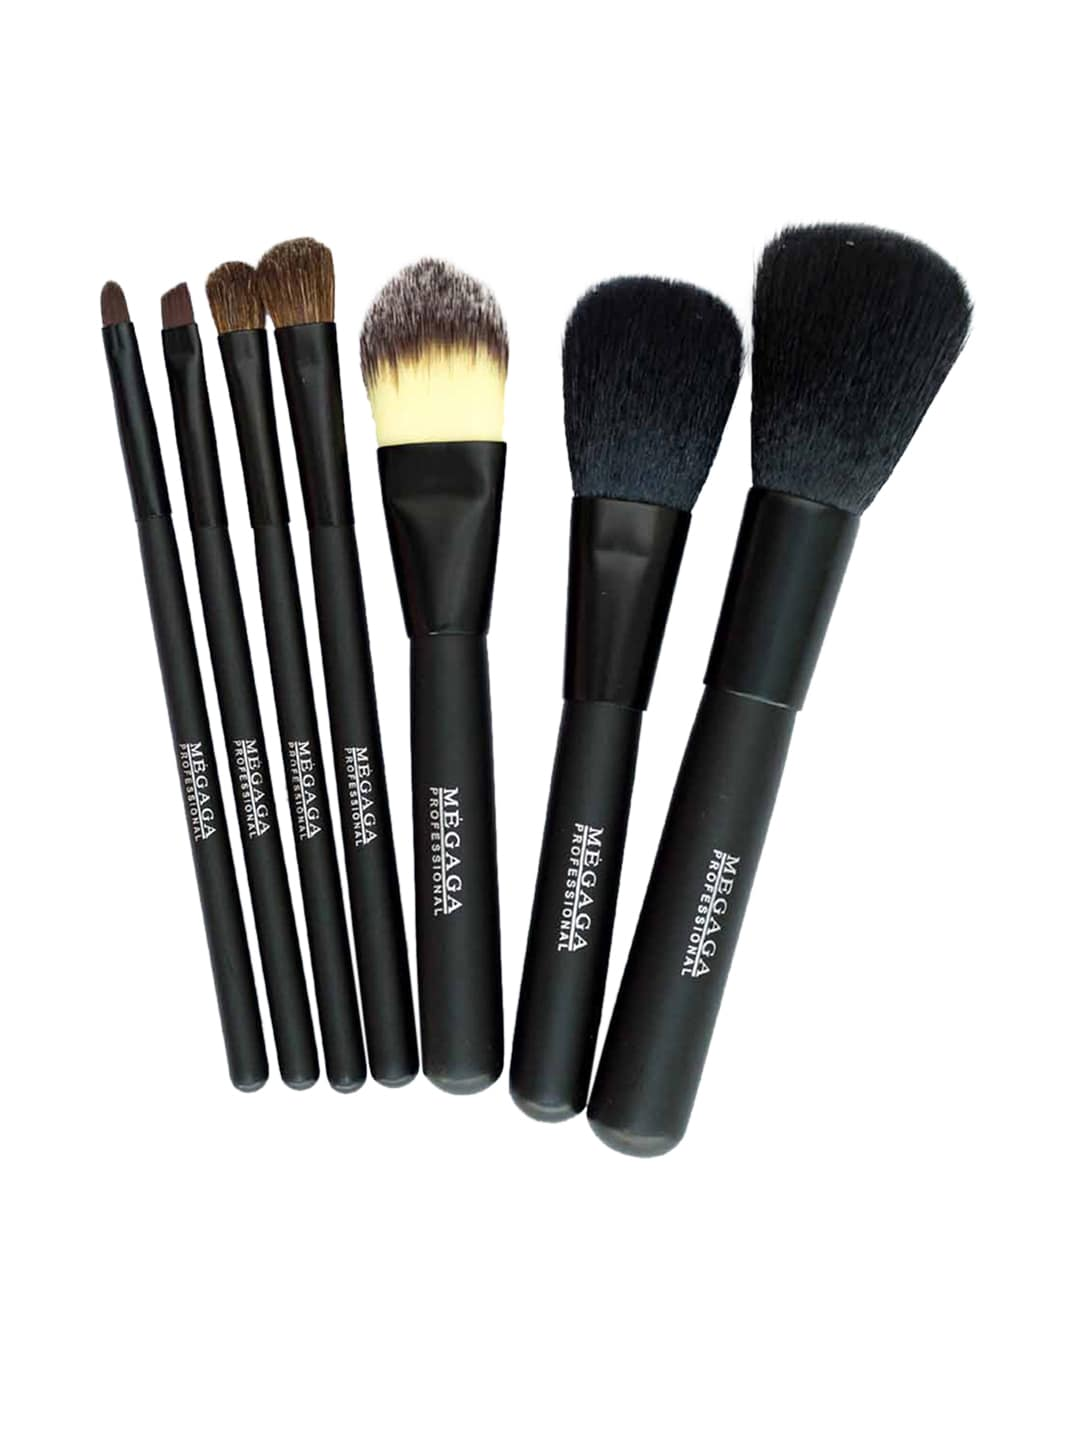 Makeup Brushes - Buy Makeup Brushes Online in India  700fe956e